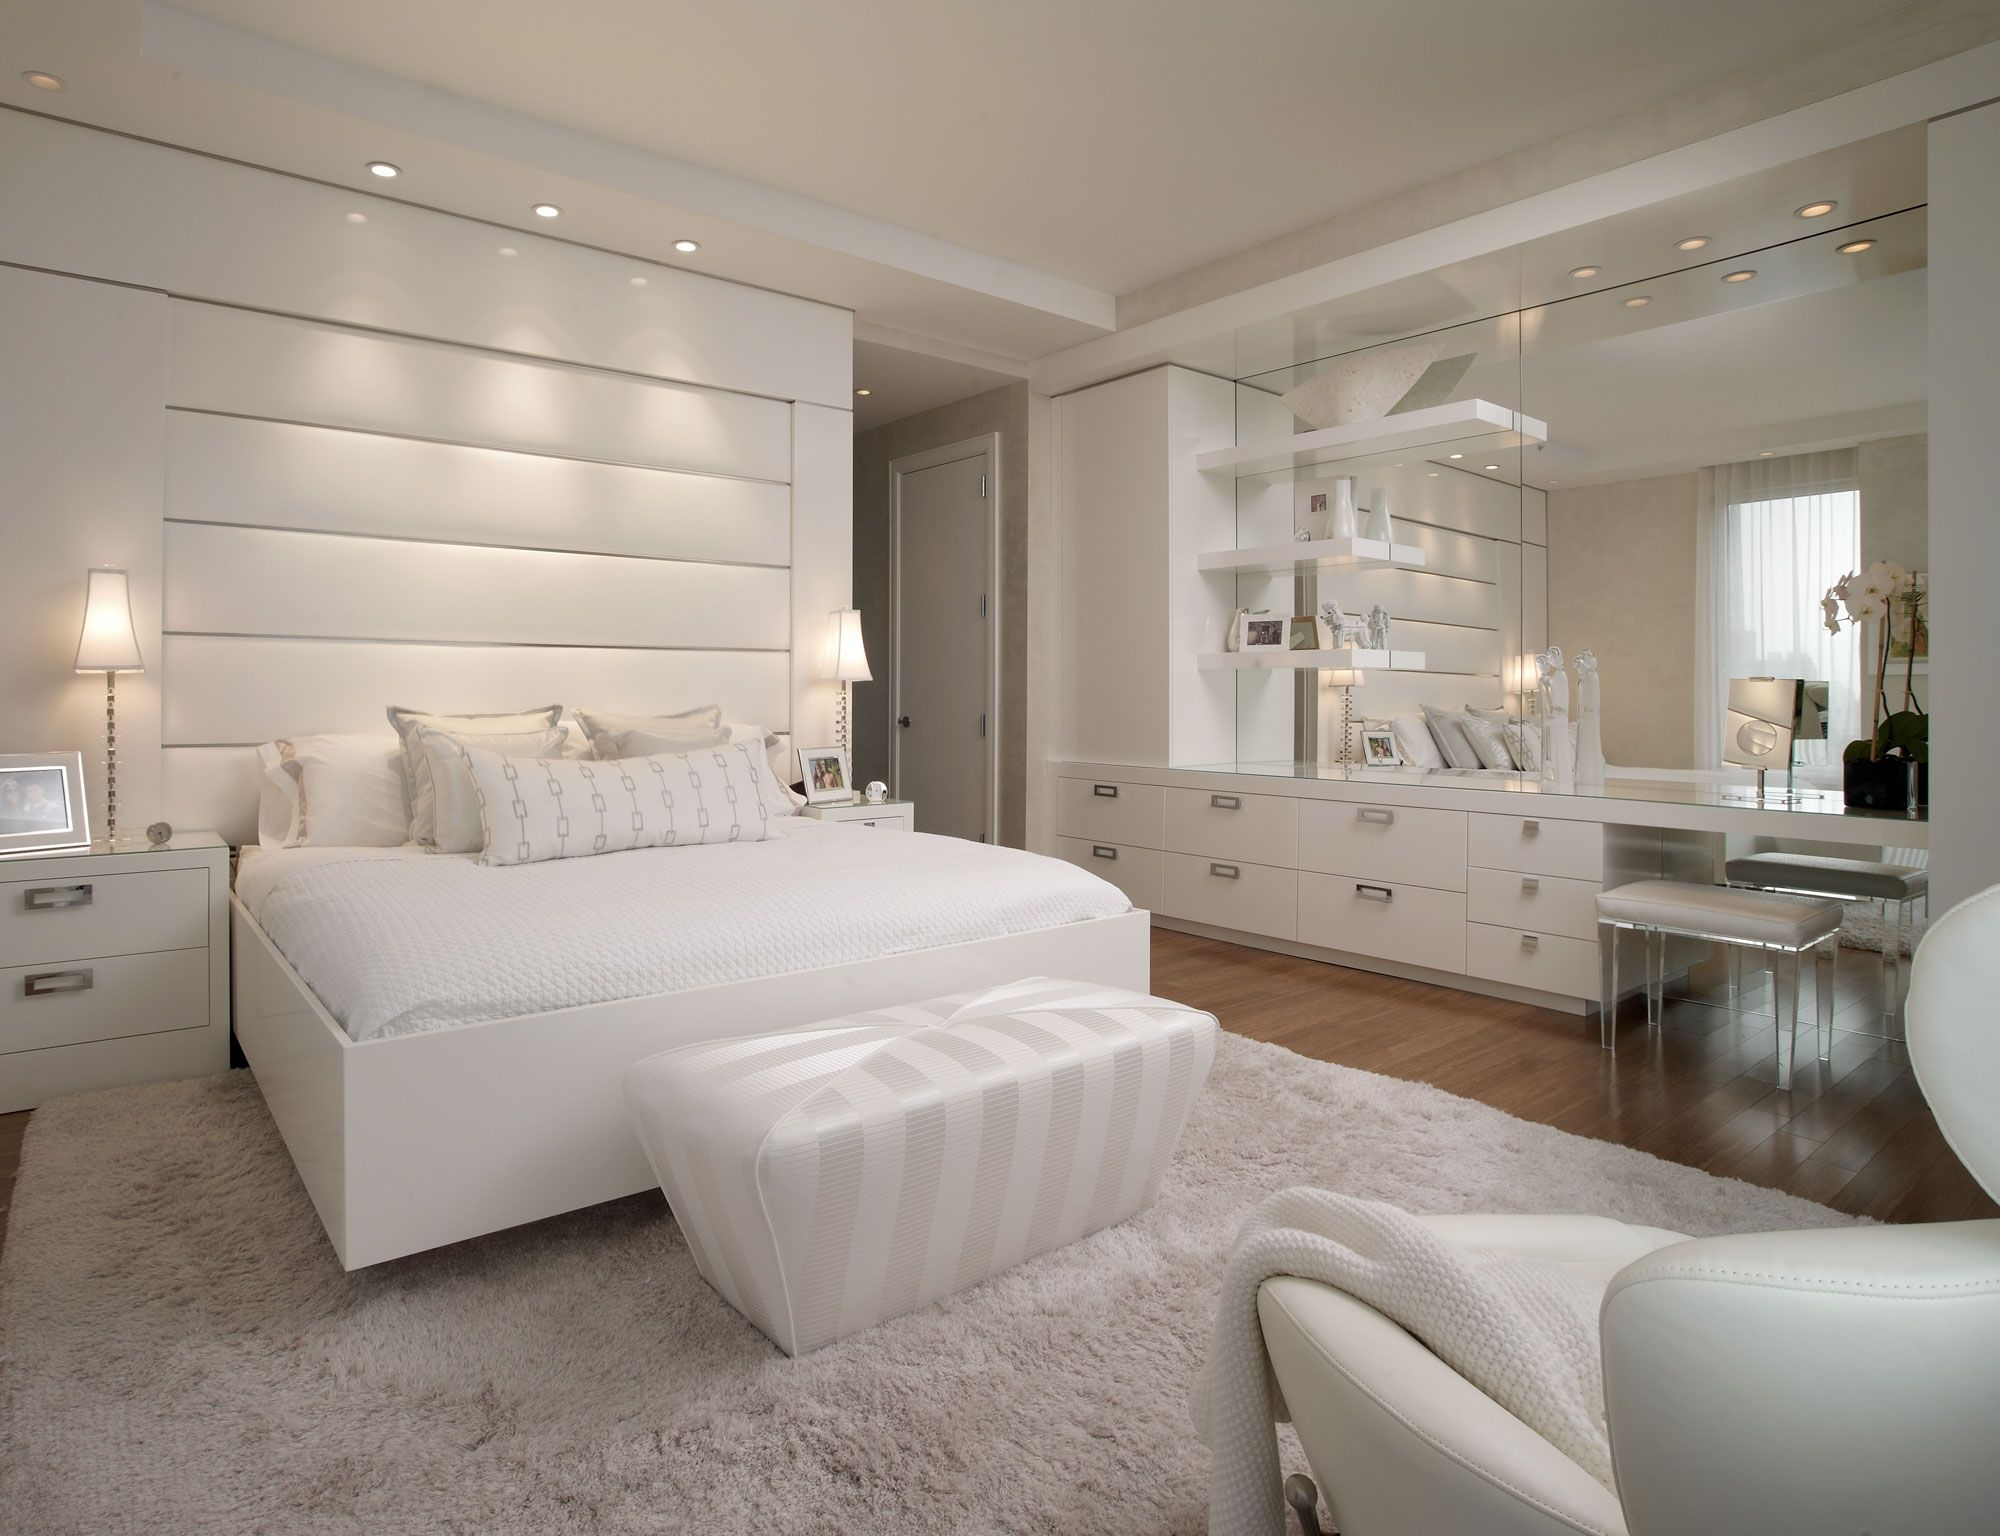 Luxury all white bedroom decorating ideas amazing for New house bedroom ideas